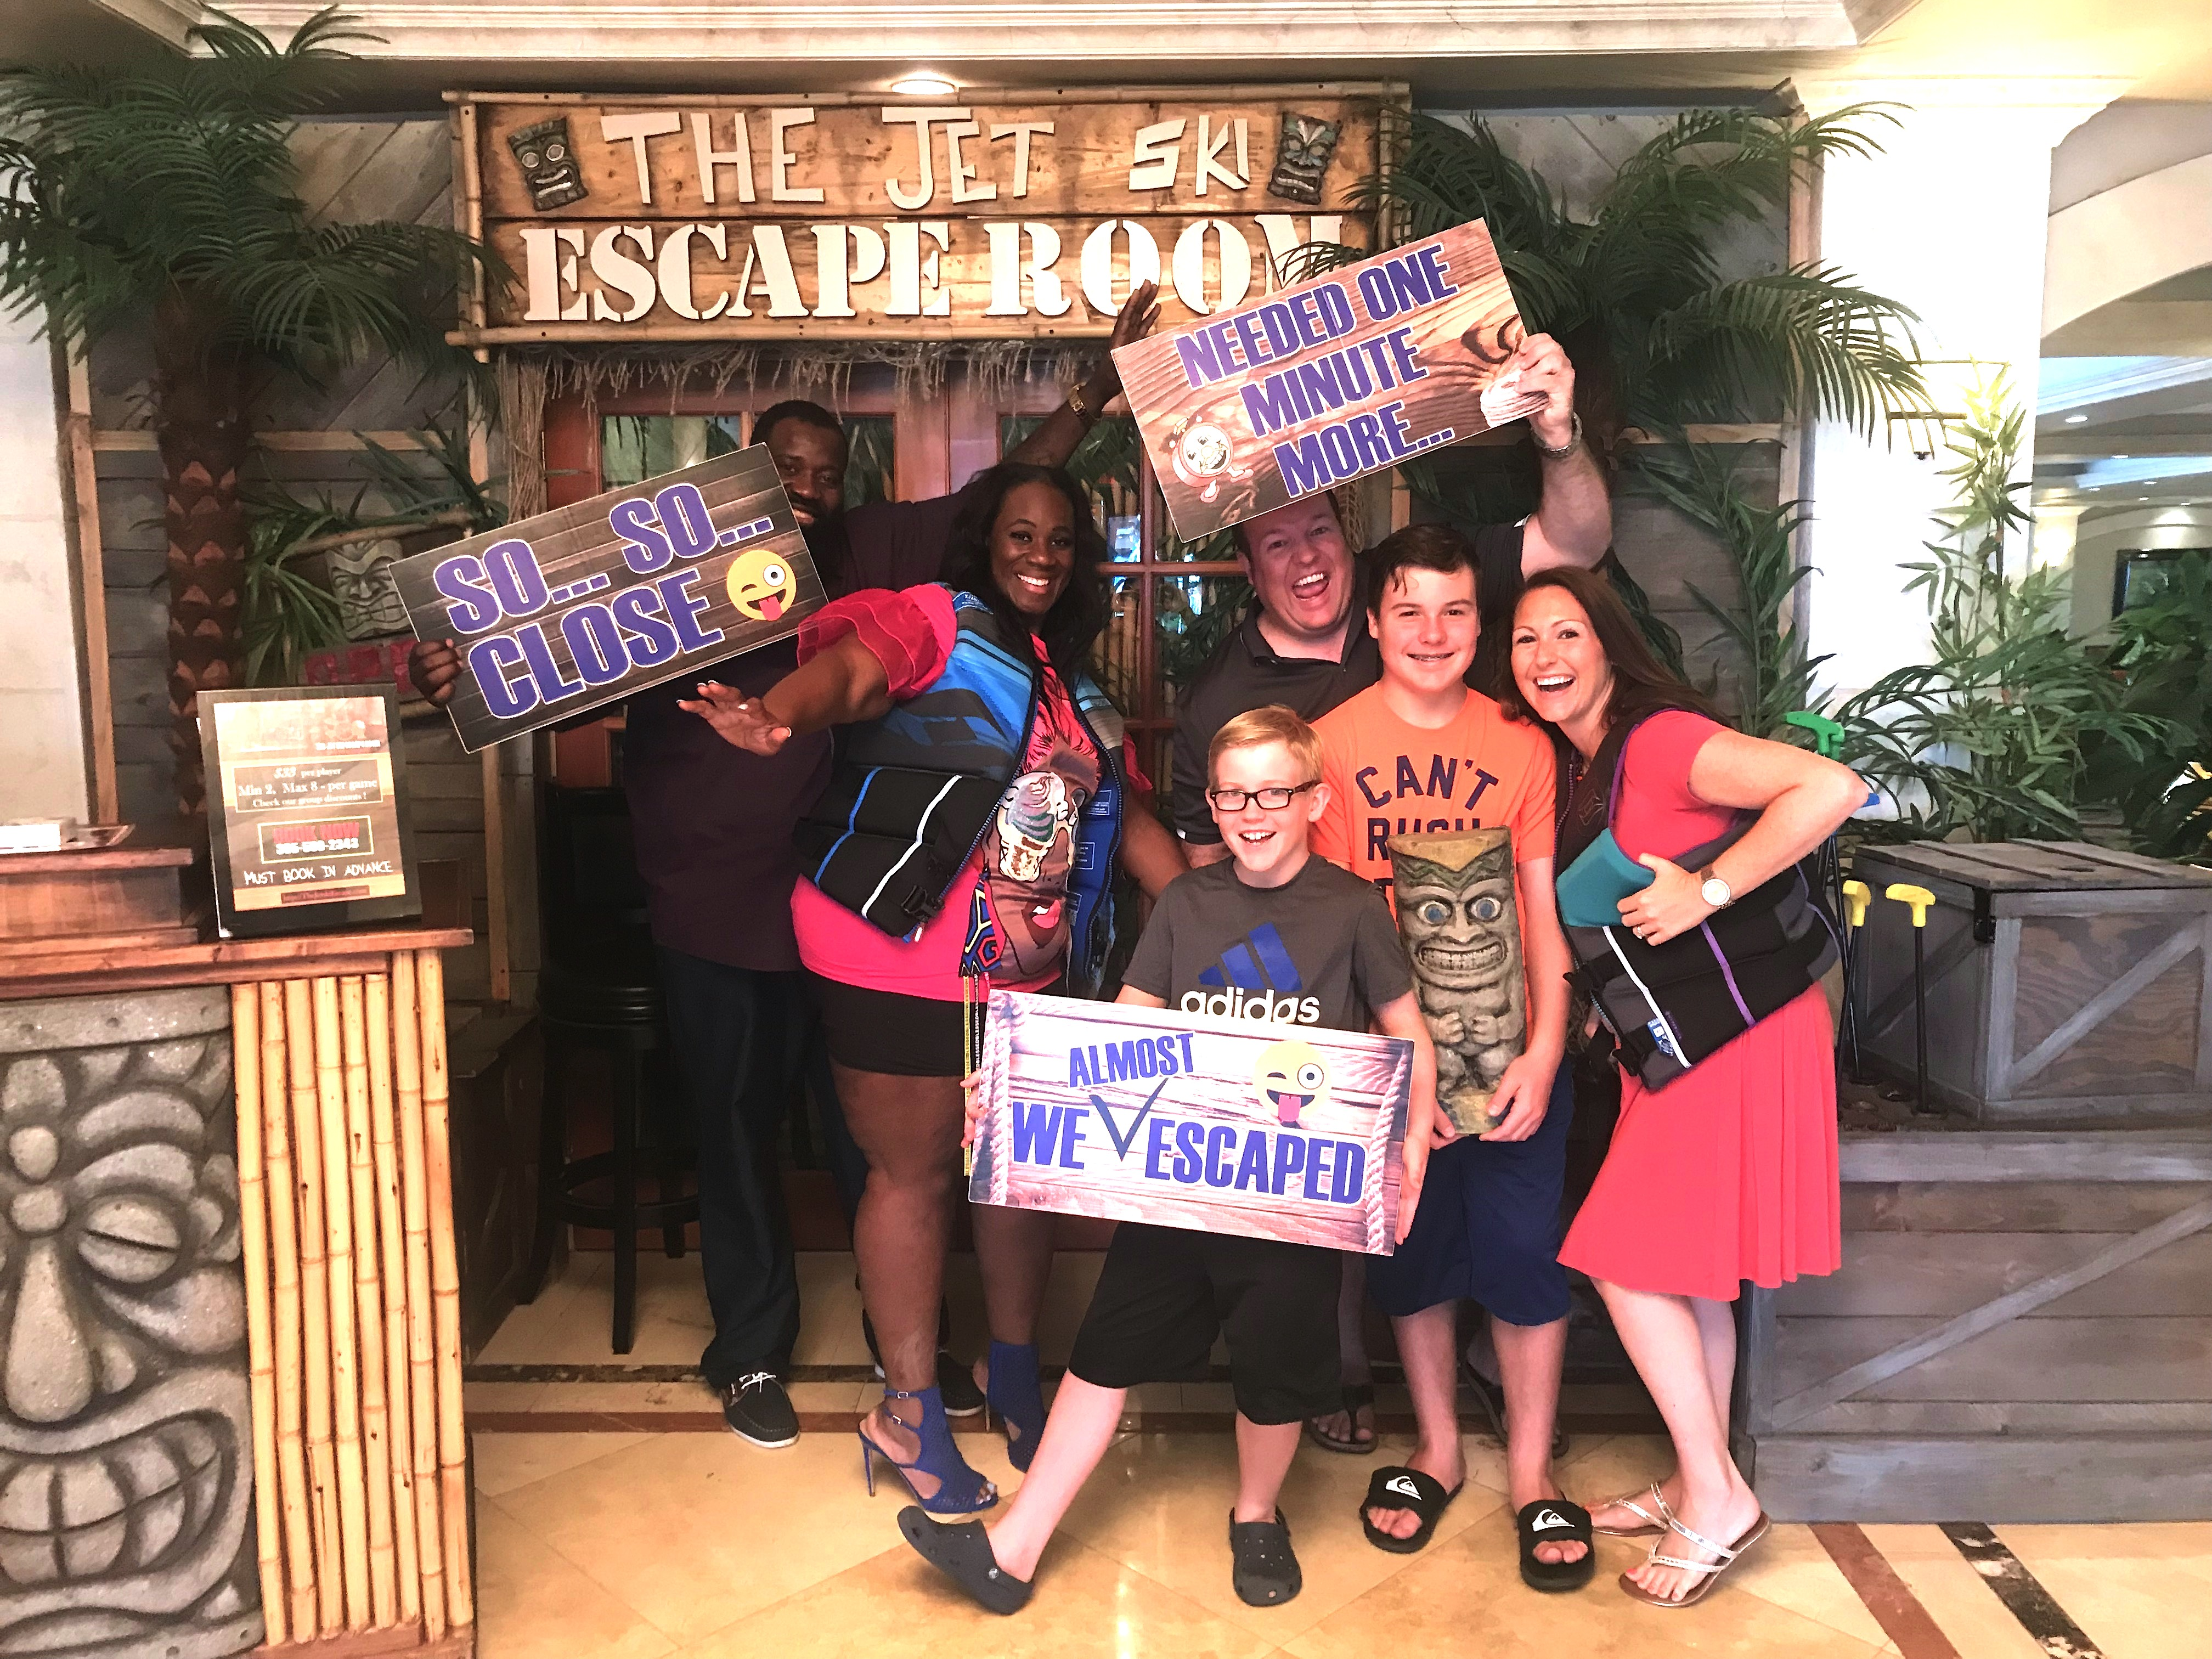 6a166bc0d The Jet Ski Escape Room In Fort Lauderdale